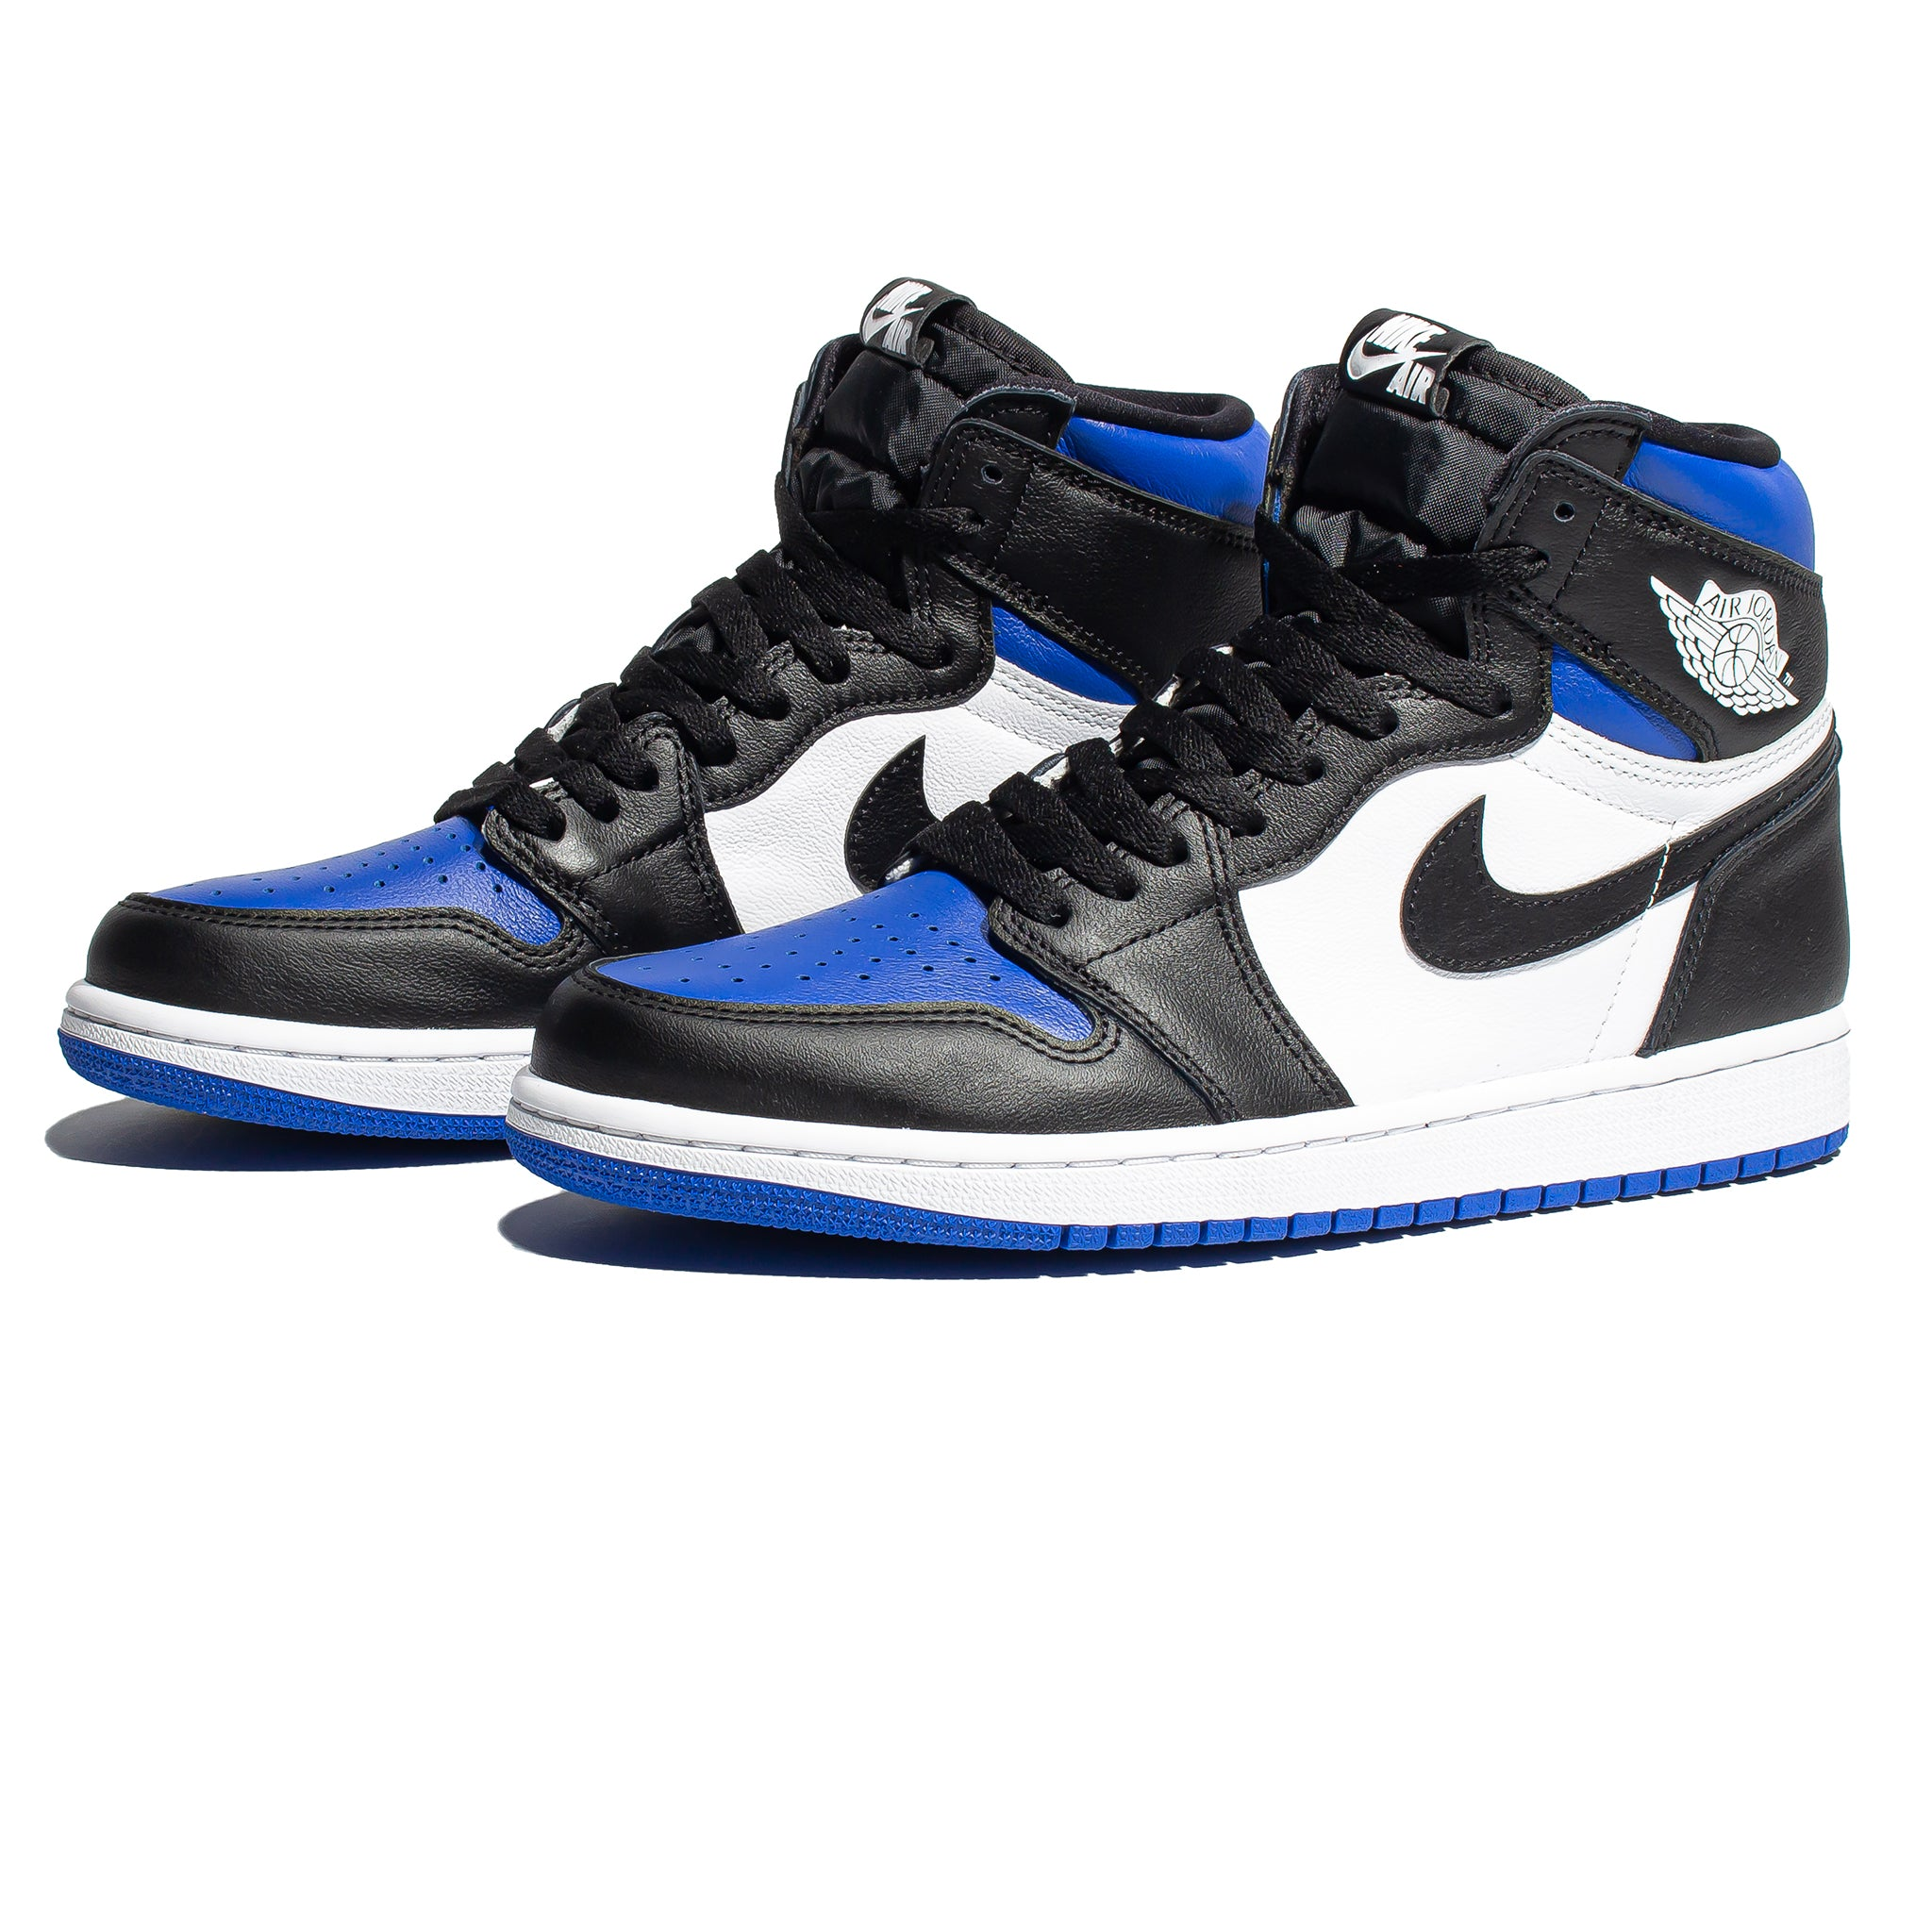 Air Jordan 1 Retro High 'Game Royal'